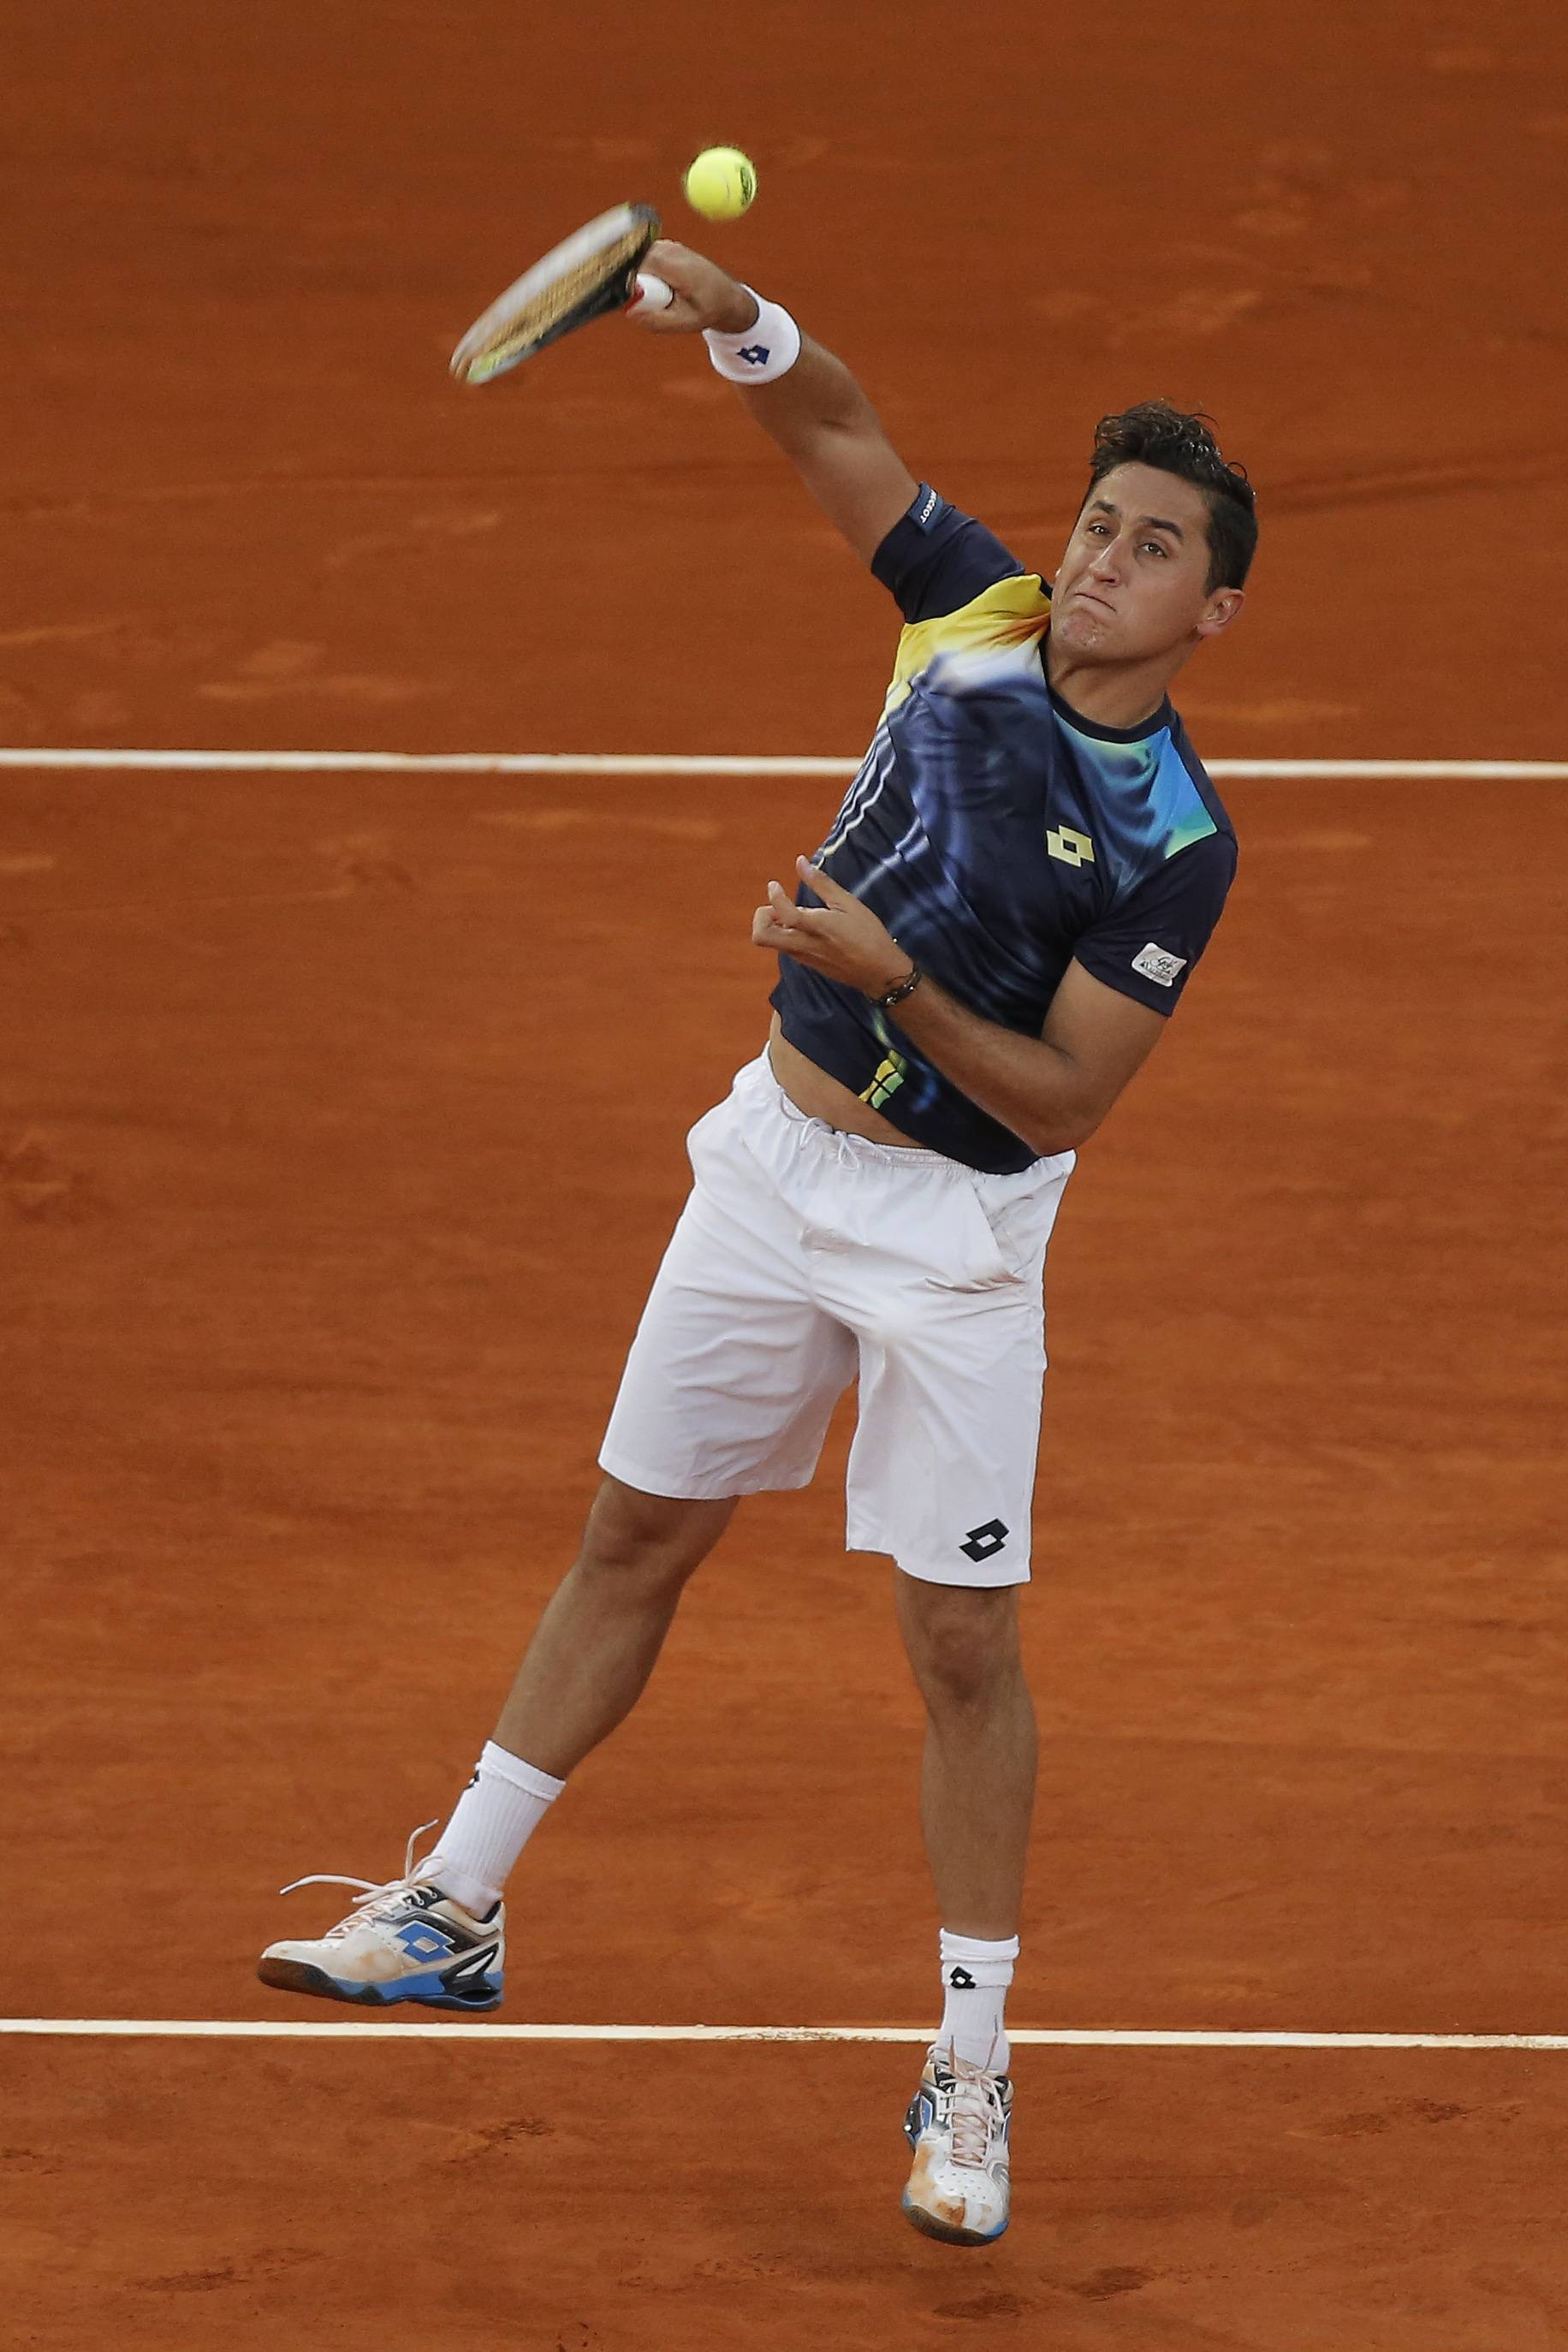 Nicolas Almagro from Spain returns the ball during a Madrid Open tennis tournament match against Britain's Andy Murray, in Madrid, Spain, Wednesday, May 7, 2014.